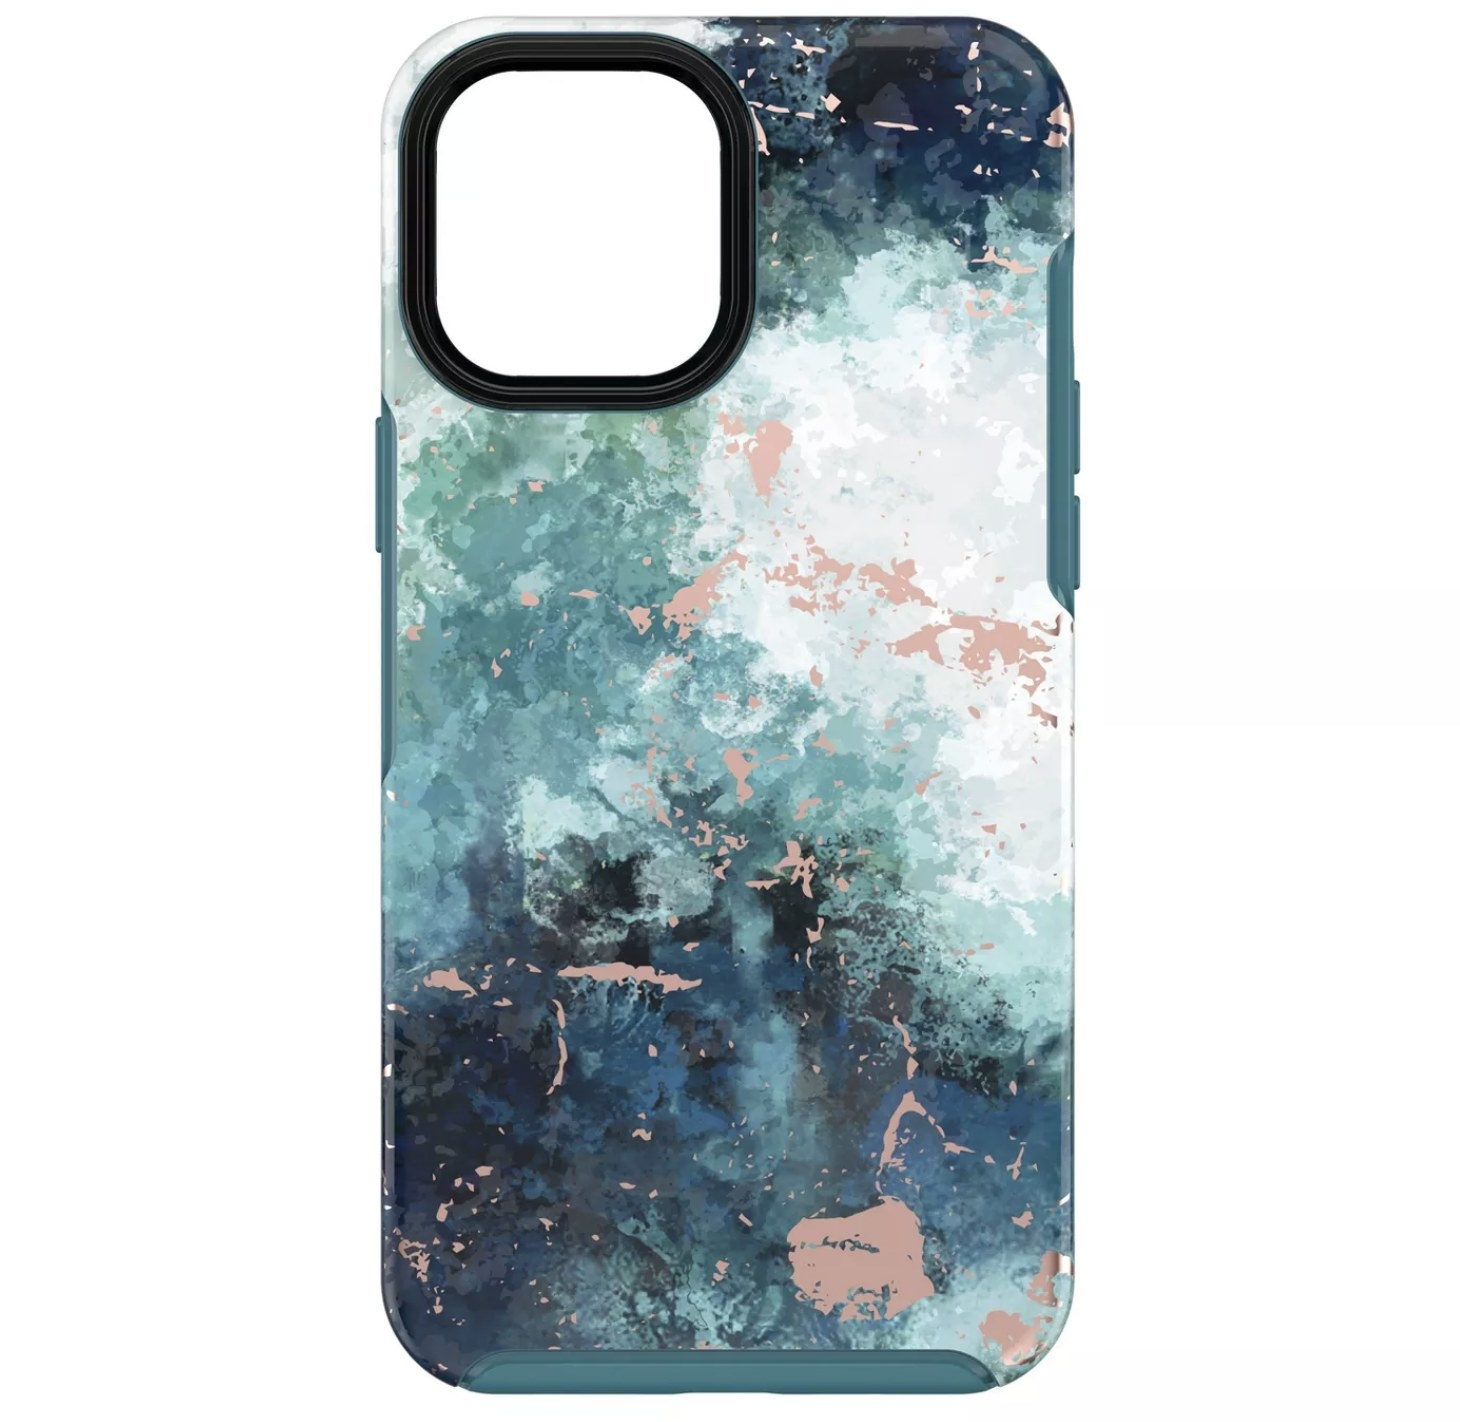 The phone case with a sea foam design